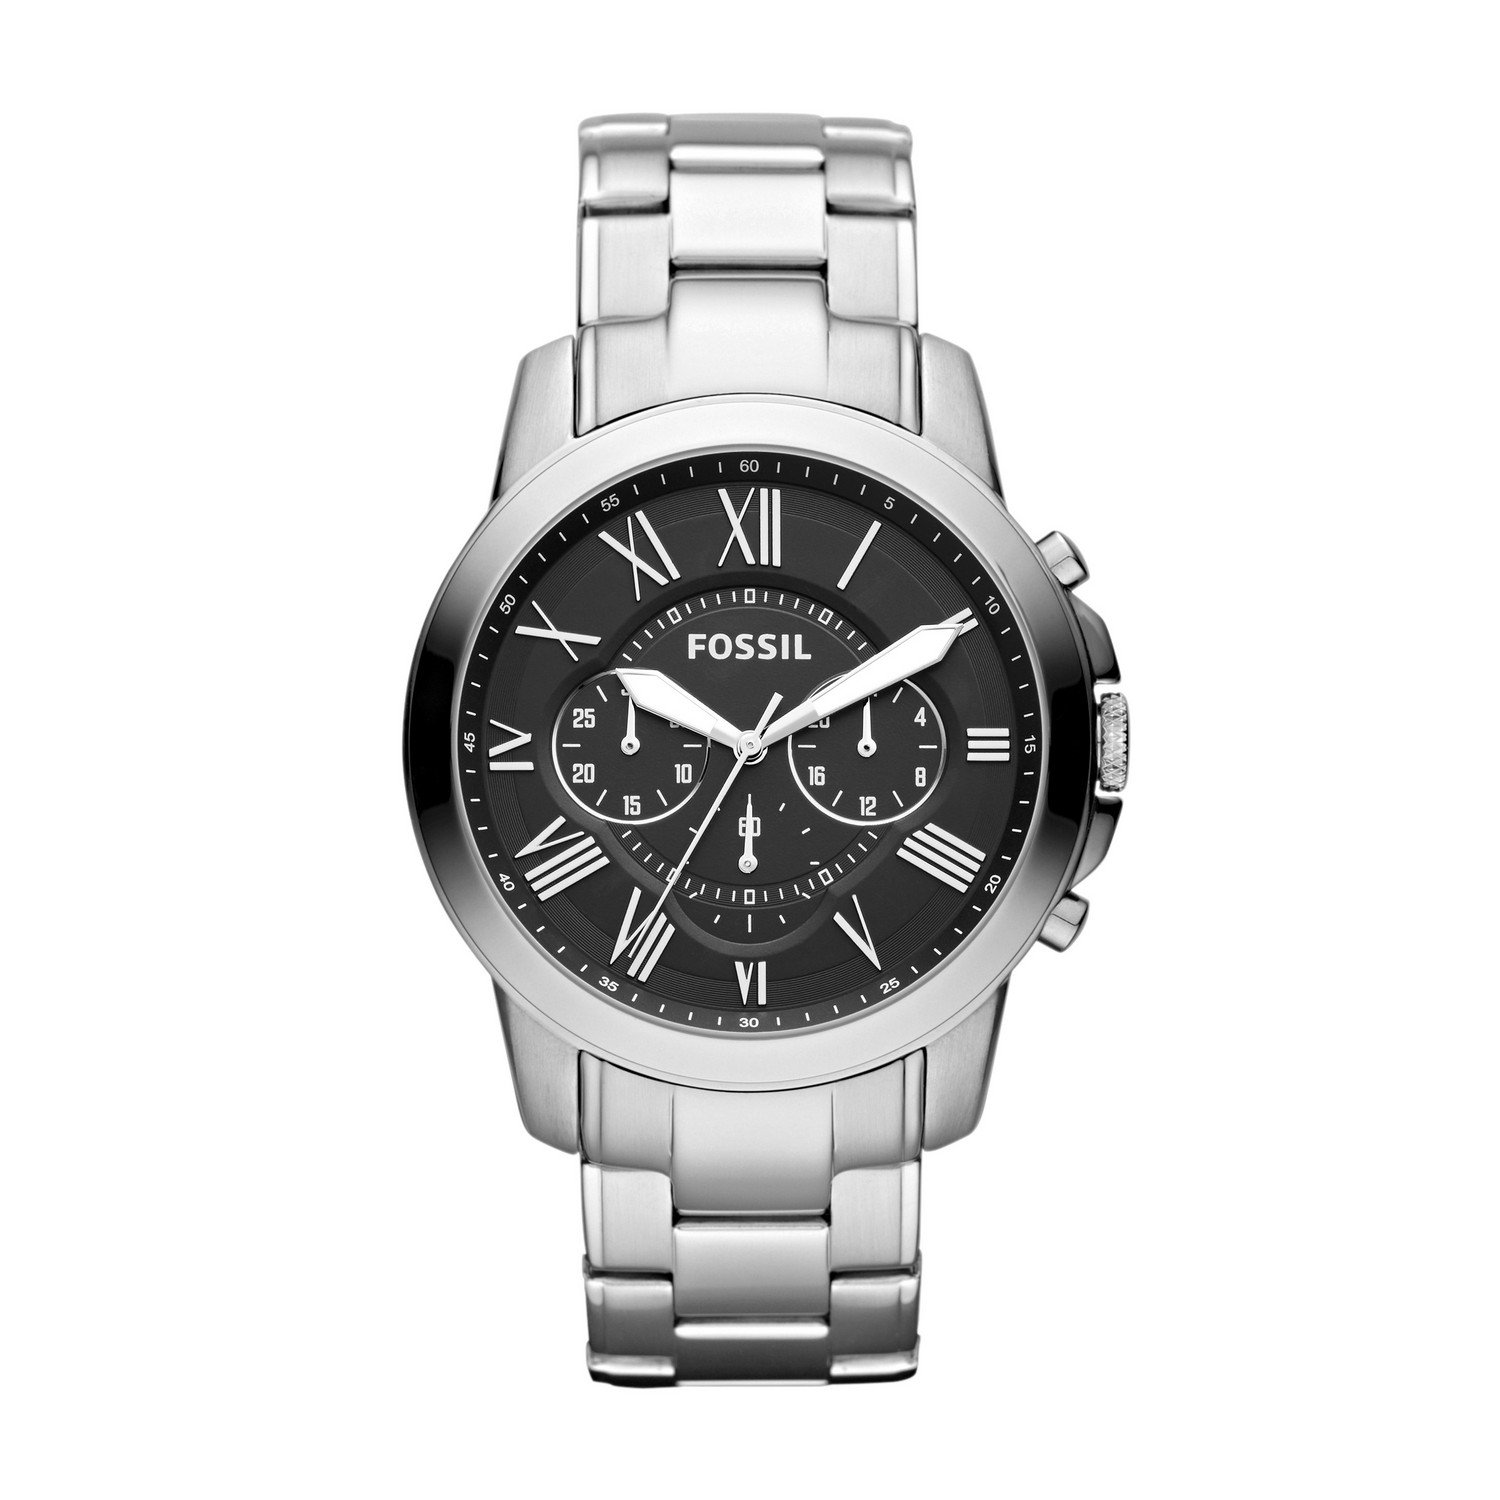 Amazon.com: Fossil Mens Grant Quartz Stainless Steel Dress Watch Color: Silver (Model: FS4736): Fossil: Watches